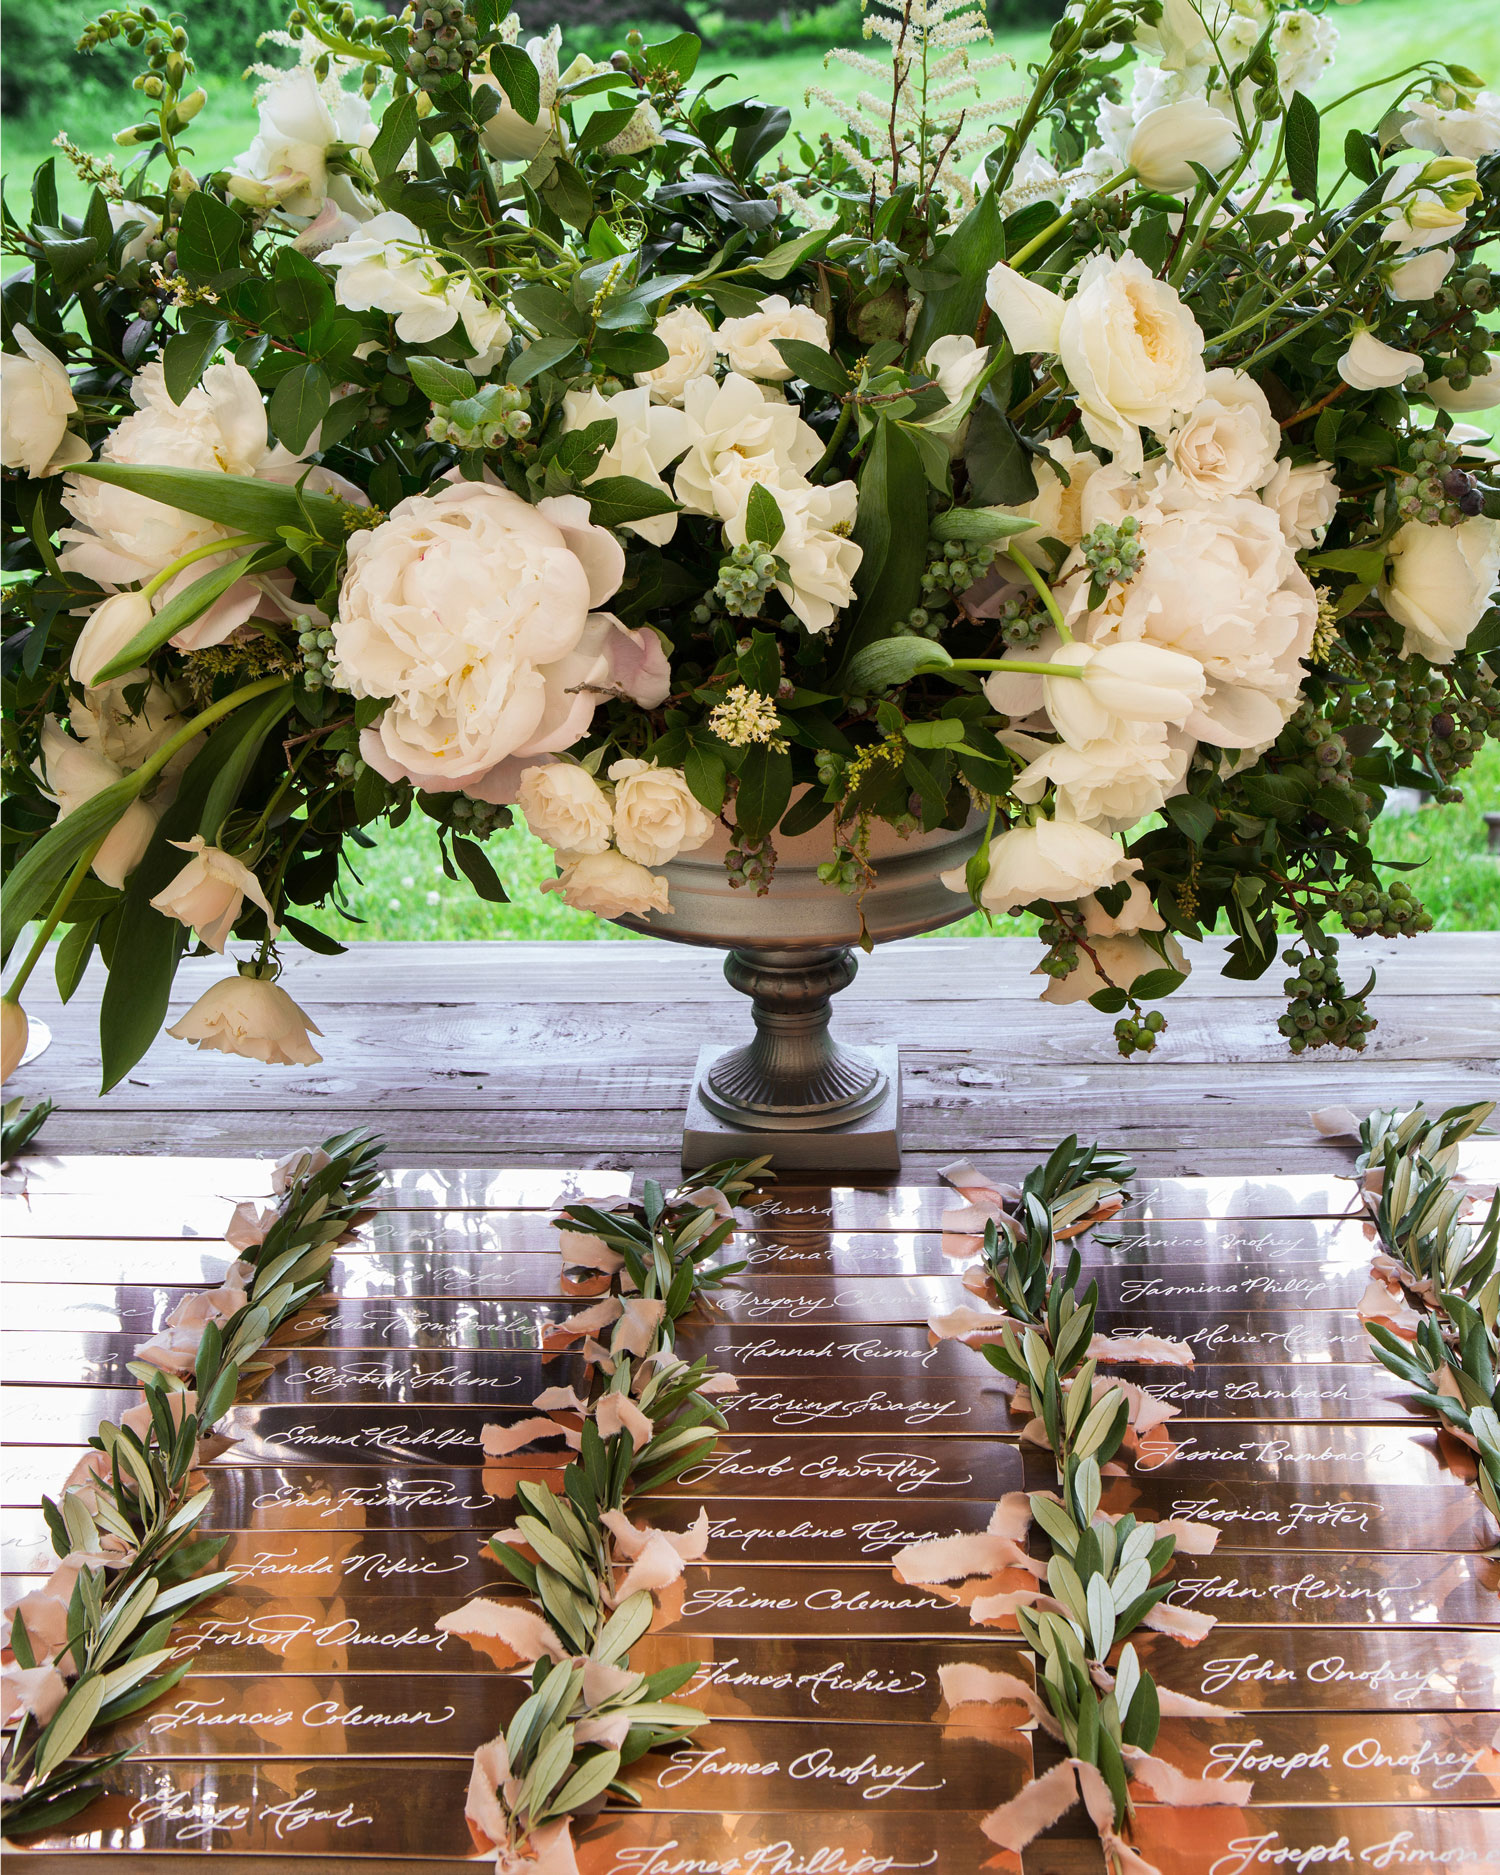 Classic White Rose Centerpiece